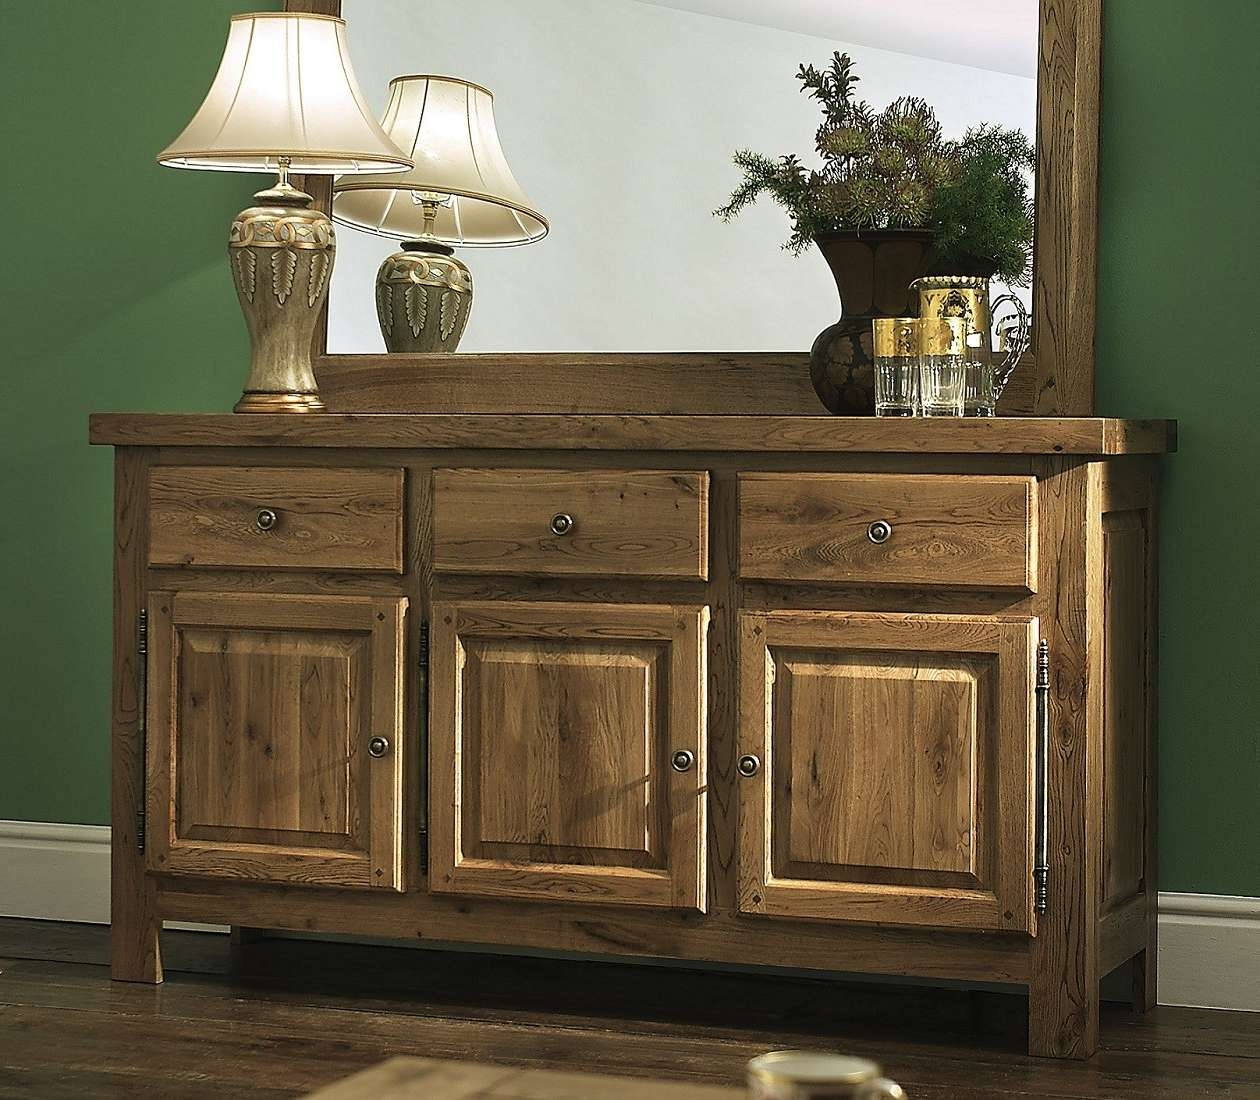 Windermere Solid Oak Large 3 Door Sideboard | Oak Furniture Uk Inside Solid Oak Sideboards (View 20 of 20)